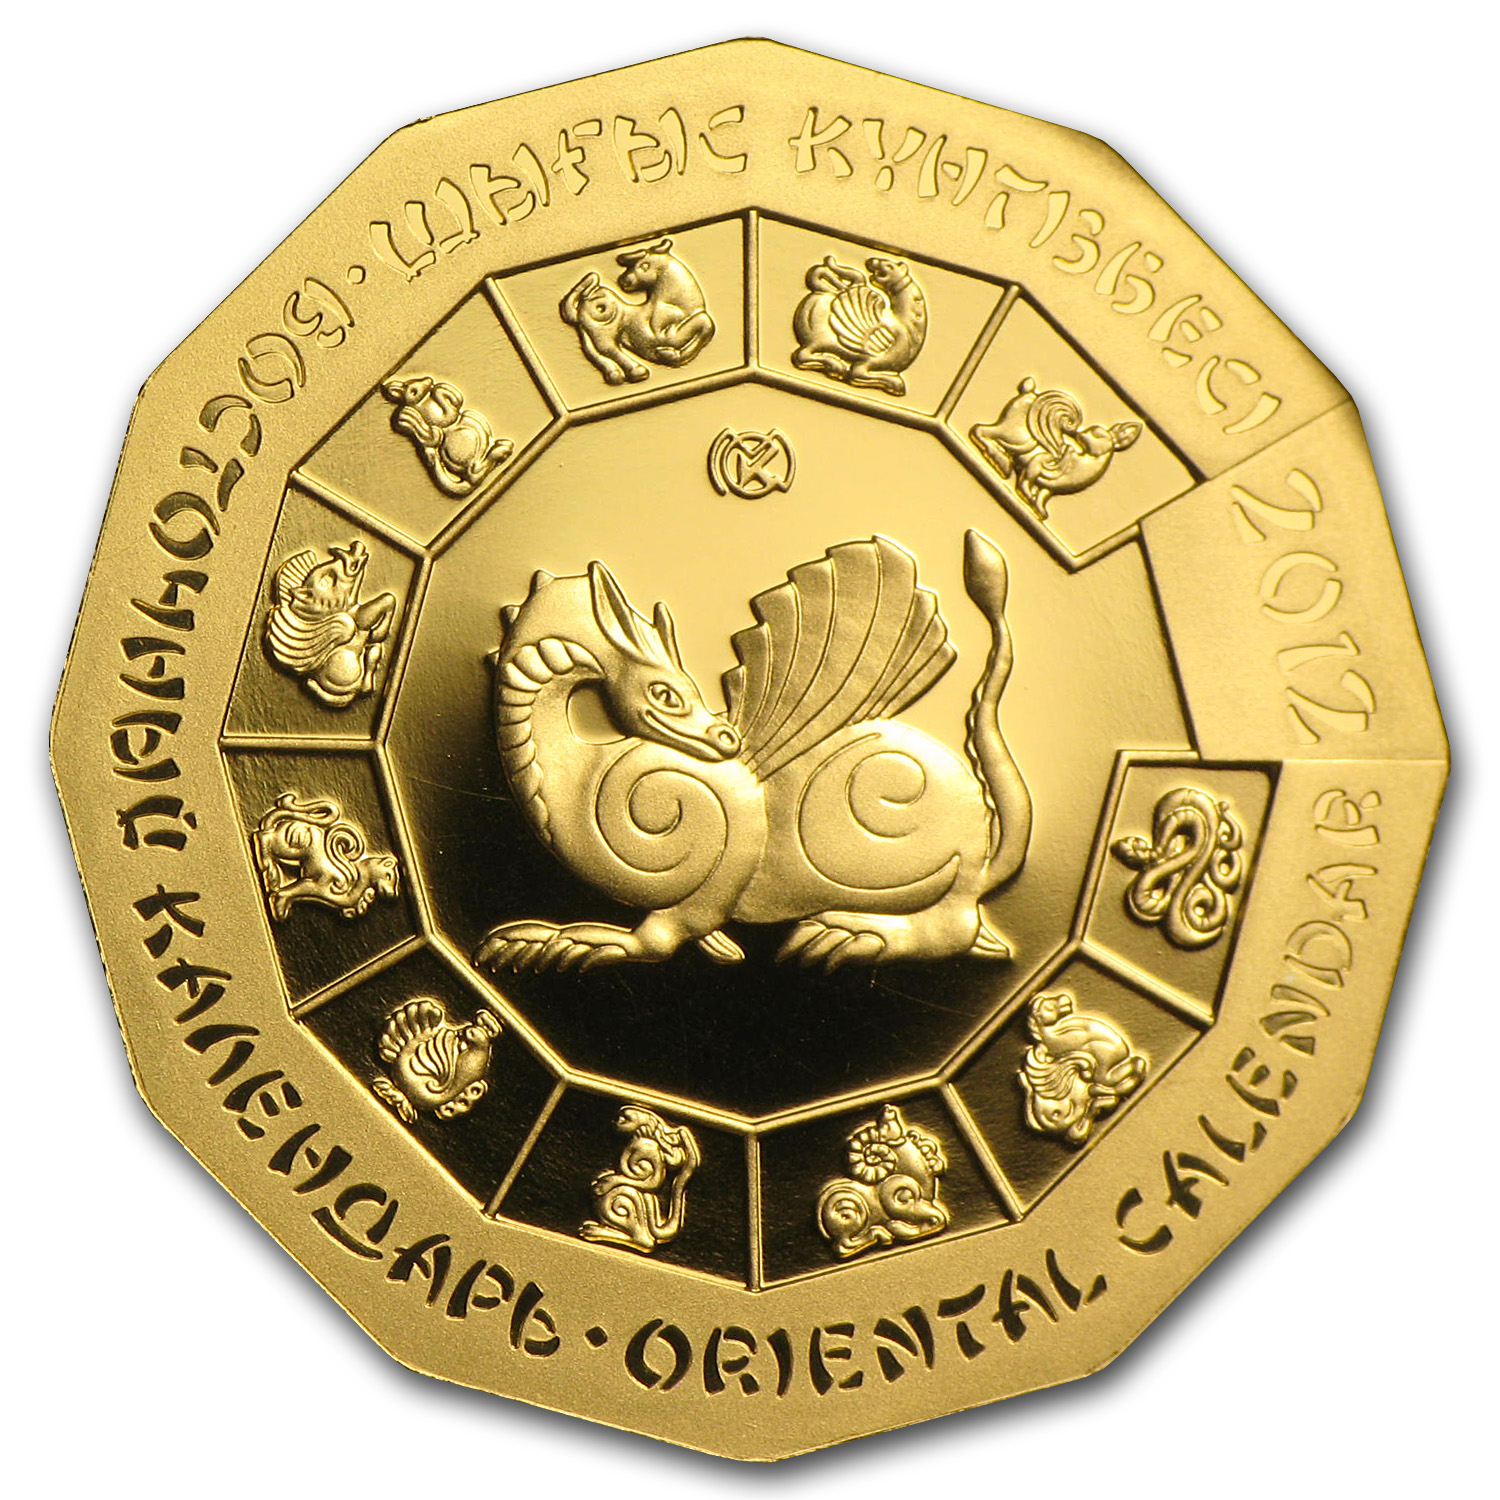 Kazakhstan 2012 500 Tenge Proof ¼ oz Gold Coin Year of the Dragon